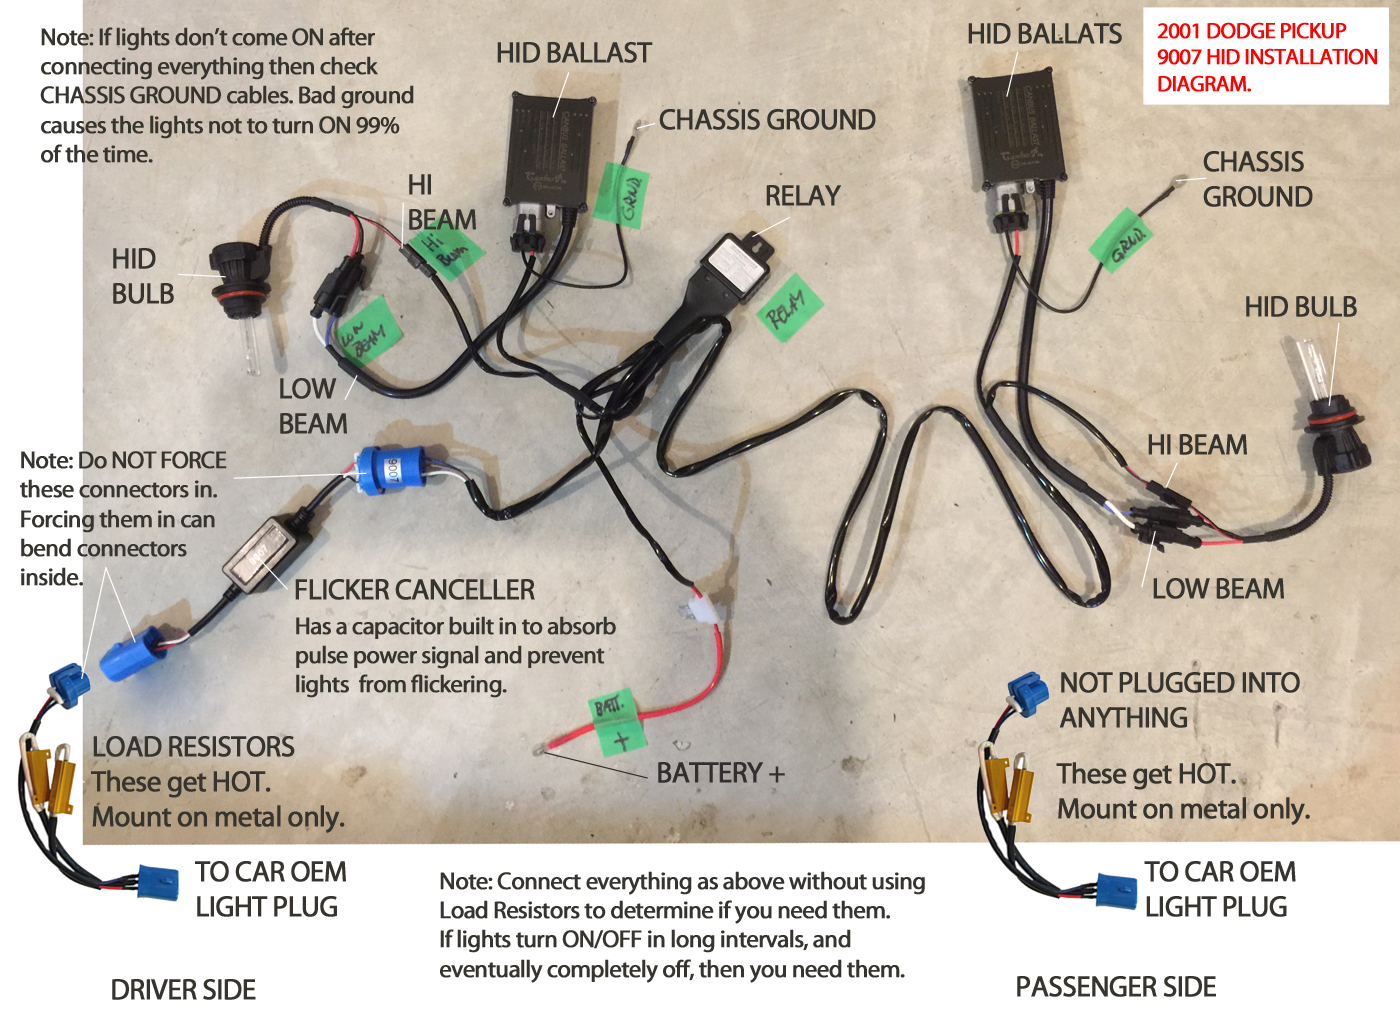 2001-dodge-9007-diagram.jpg. 75W HID KIT WITH RELAY CONNECTION DIAGRAM